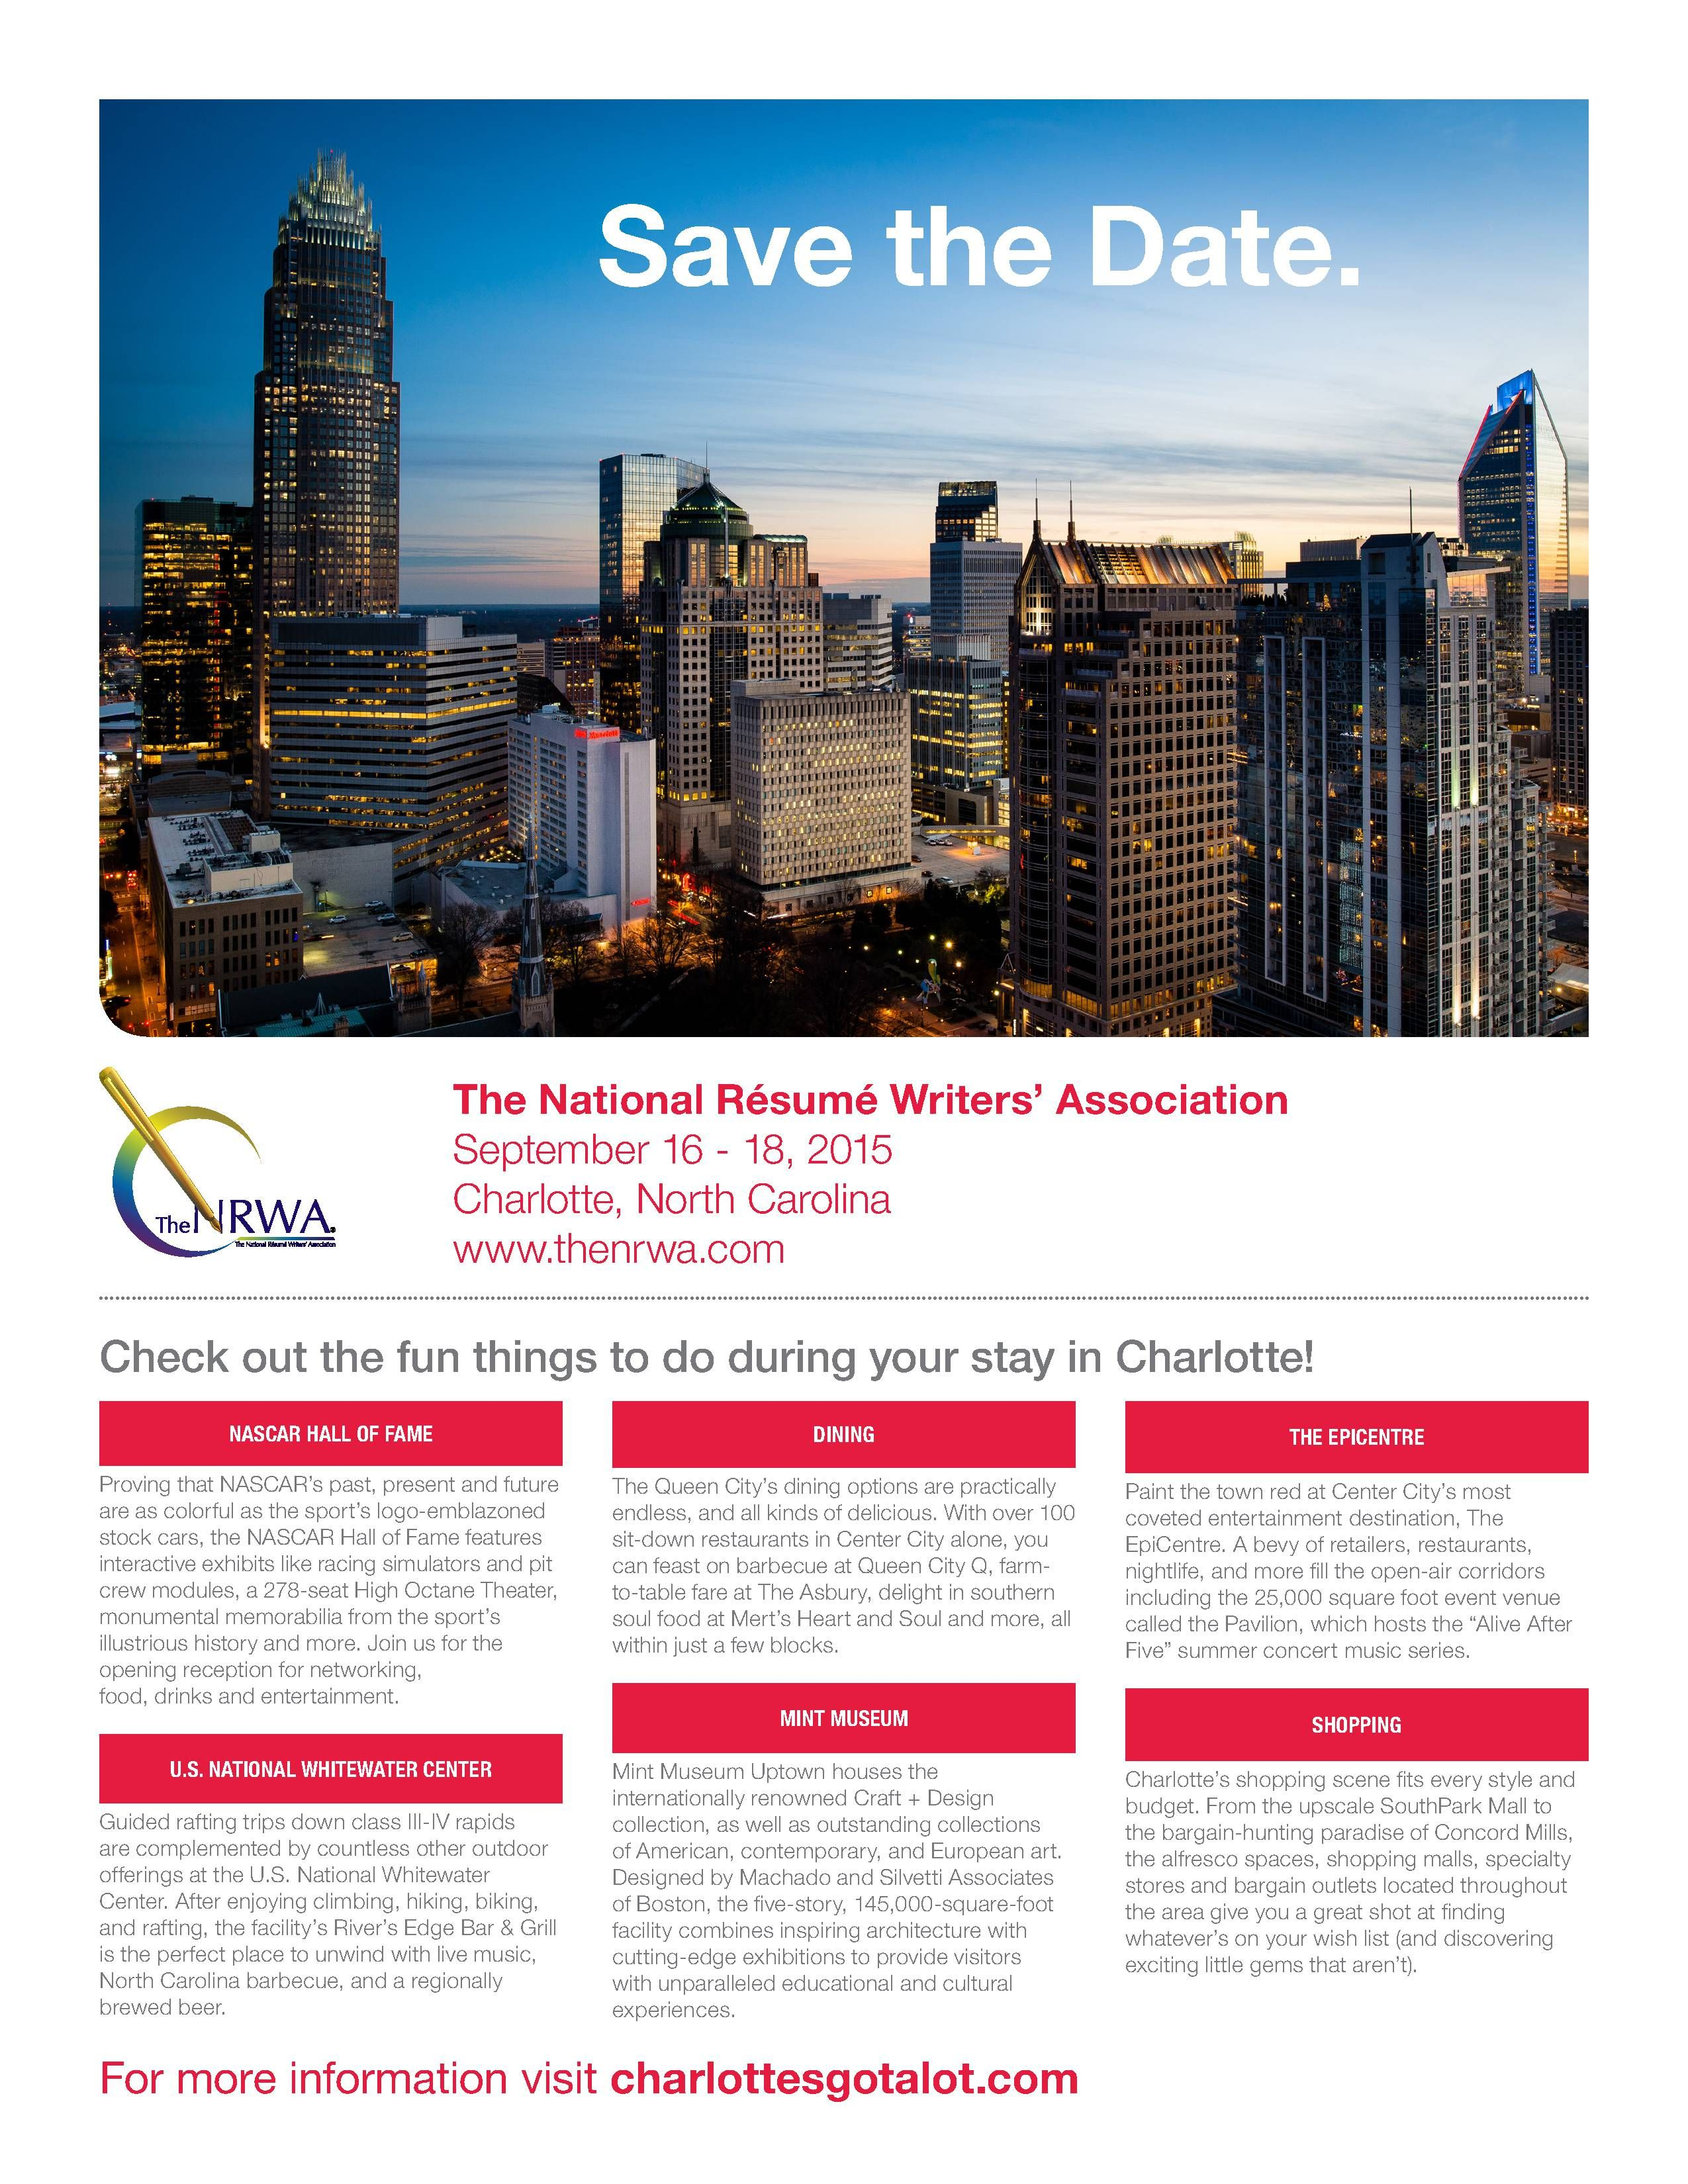 Resume Writers Association The National Resume Writers' Association  Save The Date  The Nrwa .